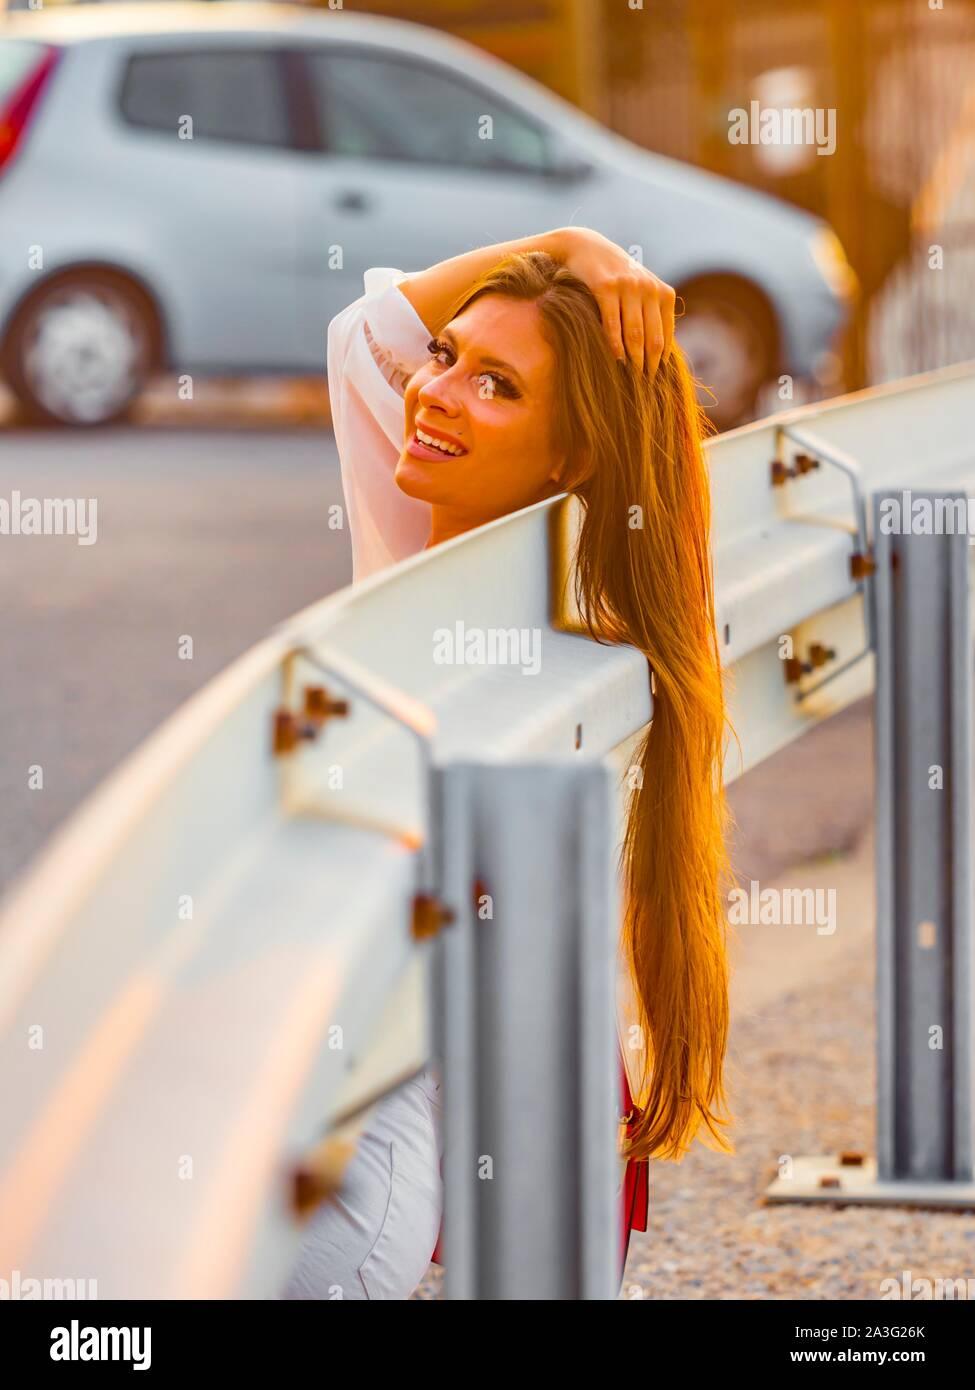 Smiling attractive young woman against sunset light smiling at camera eyeshot long hair on metal road fence hand holding hair above head Stock Photo